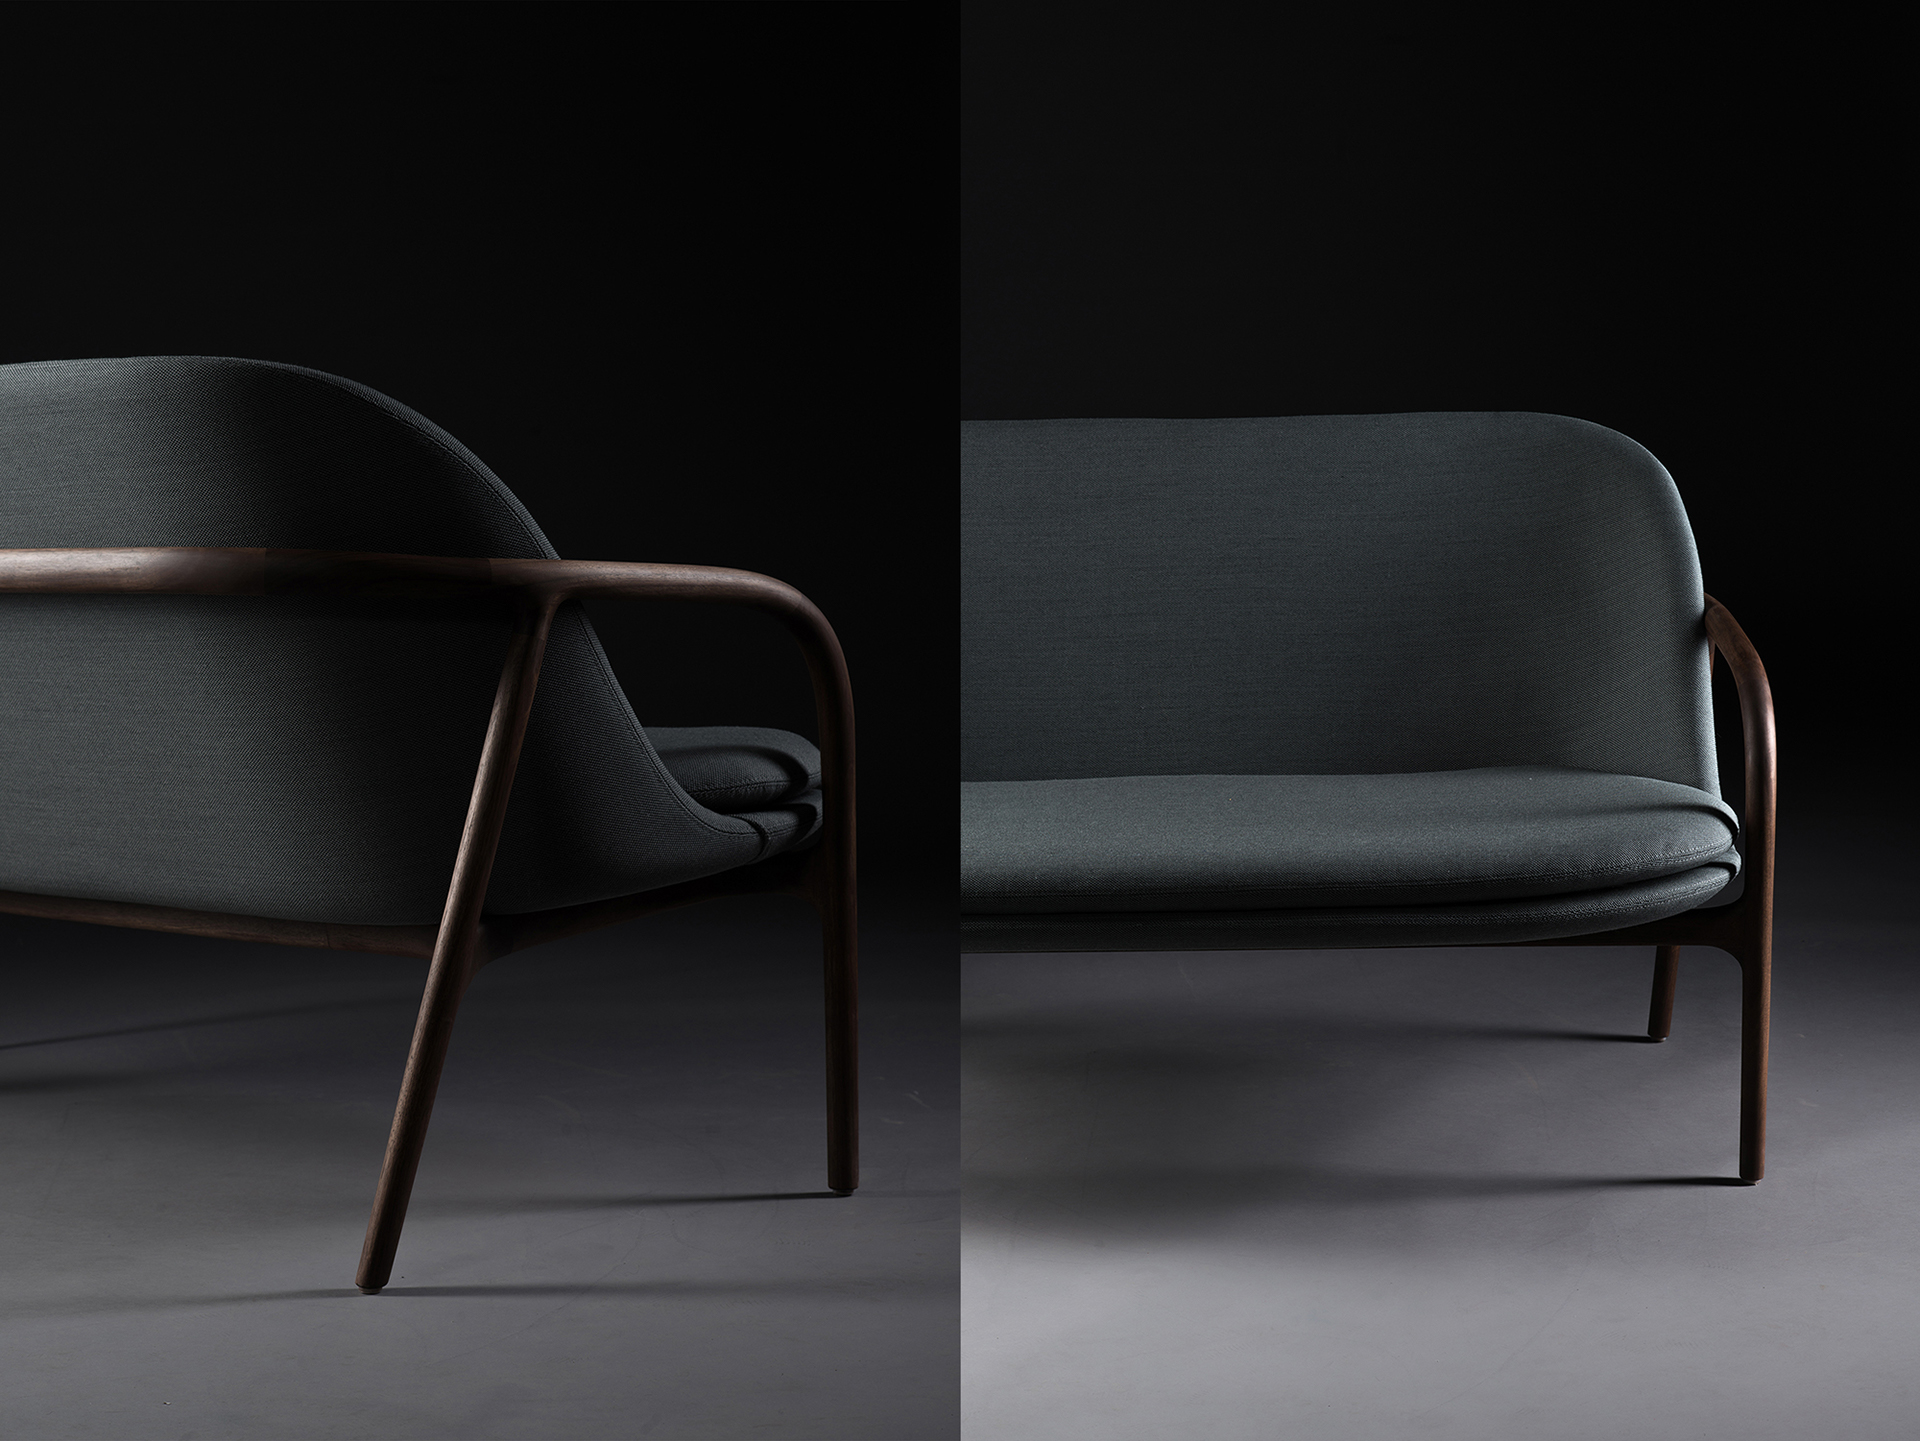 Incredible Neva Lounge Collection On Behance Pabps2019 Chair Design Images Pabps2019Com